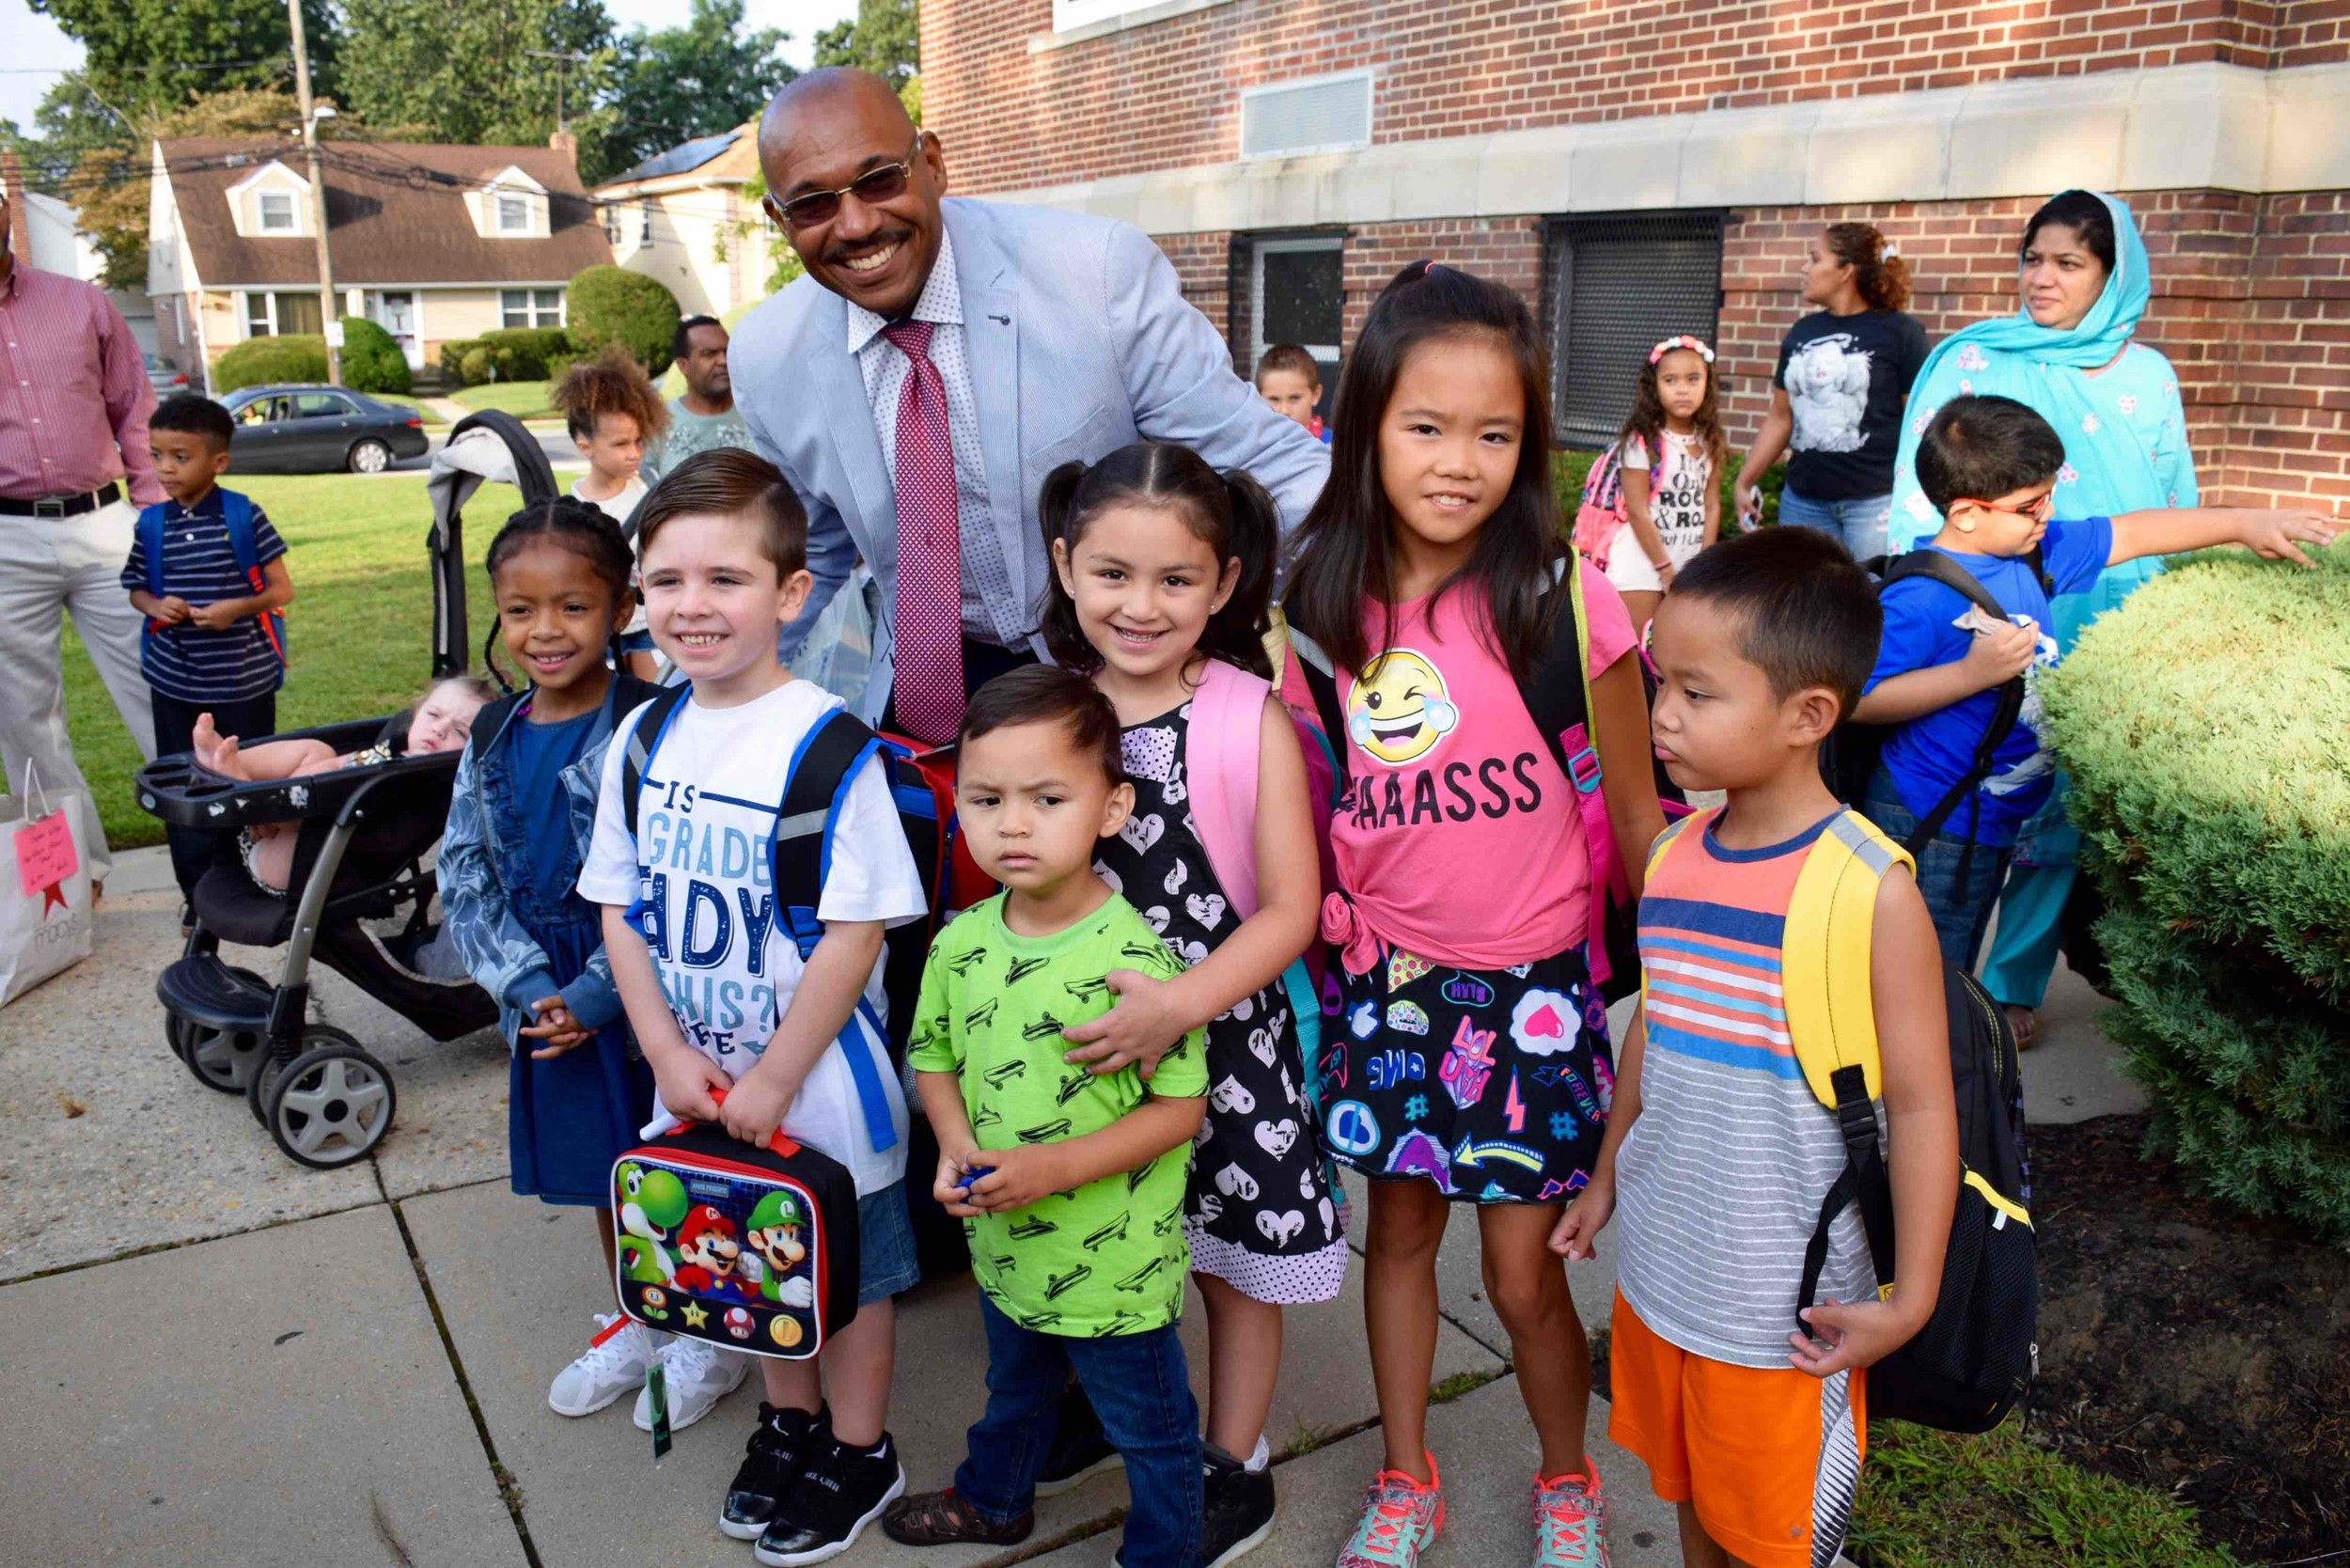 Superintendent Nicholas Stirling greeted Clear Stream Avenue students on the first day of school.